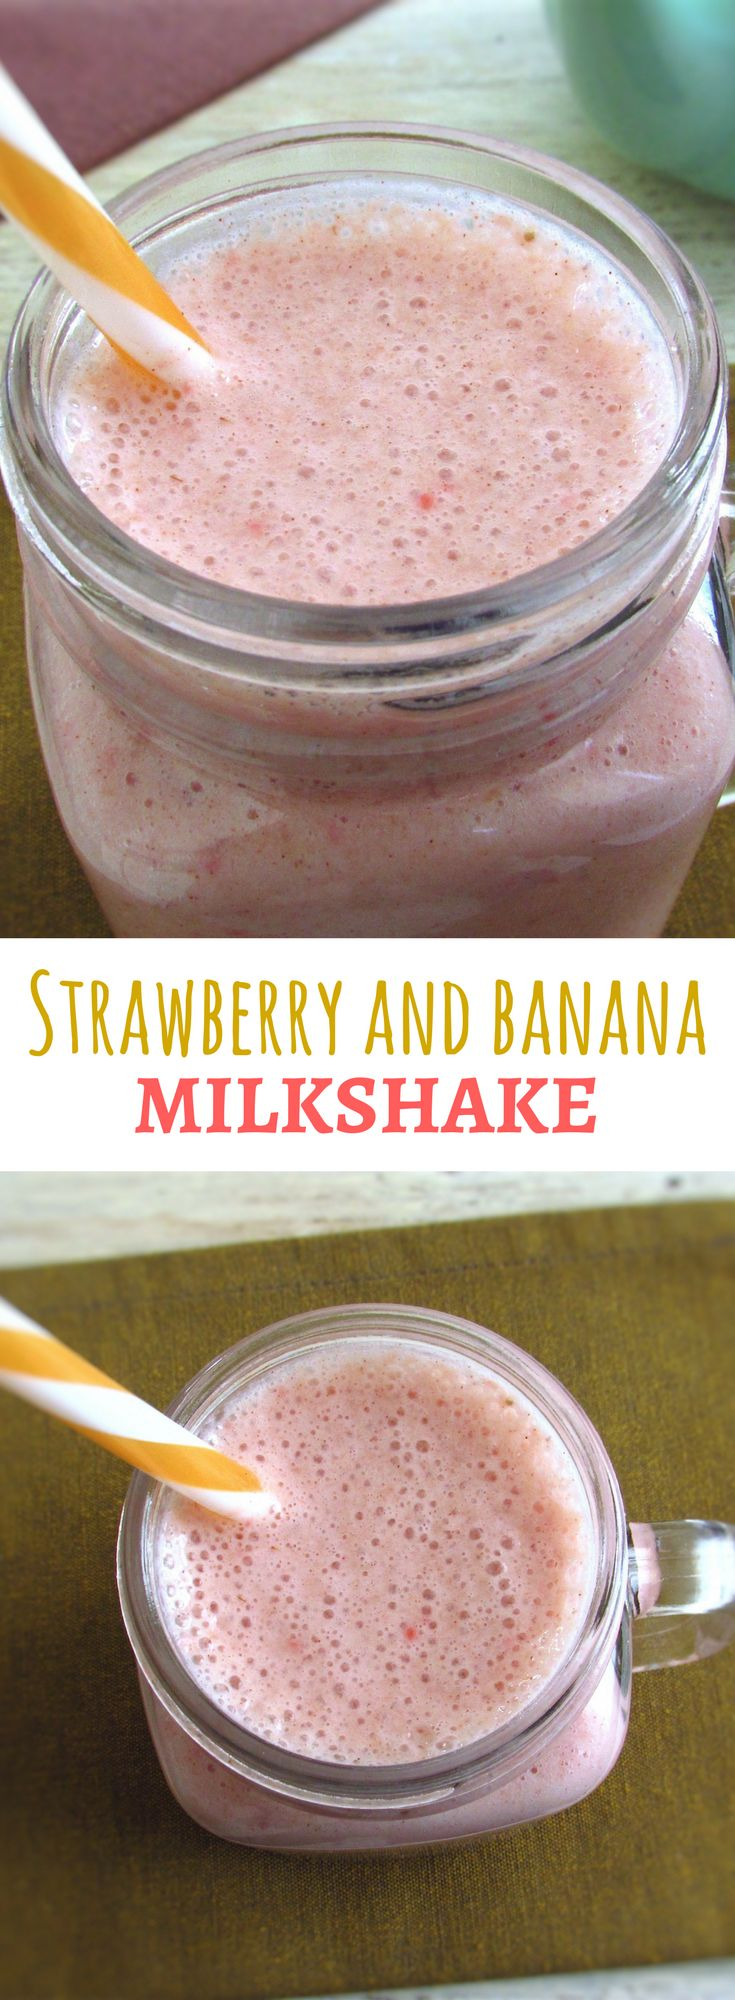 Strawberry and banana milkshake   Food From Portugal. Feel like a nutritious, fresh and tasty drink? Try this delicious strawberry and banana milkshake. Gonna love it! #milkshake #strawberry #banana #recipe